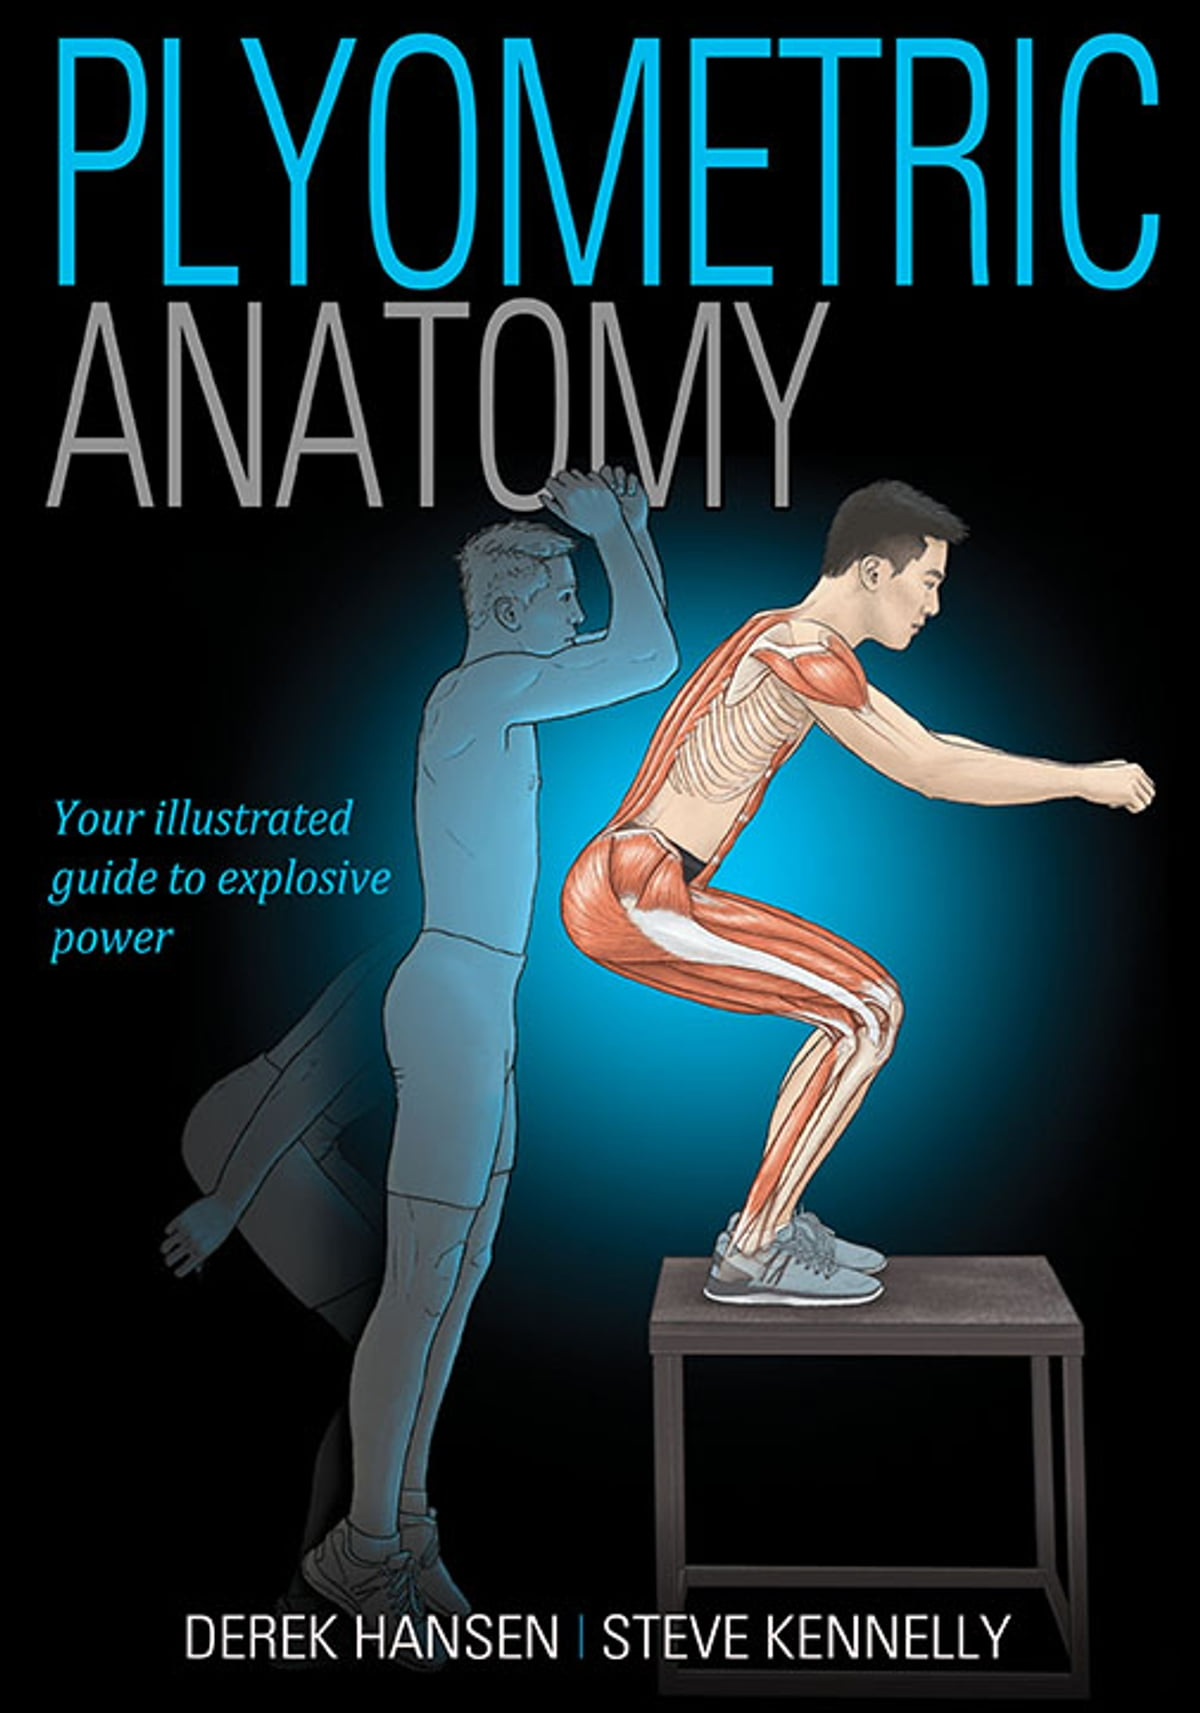 Plyometric Anatomy eBook by Derek Hansen - 9781492559535 | Rakuten Kobo